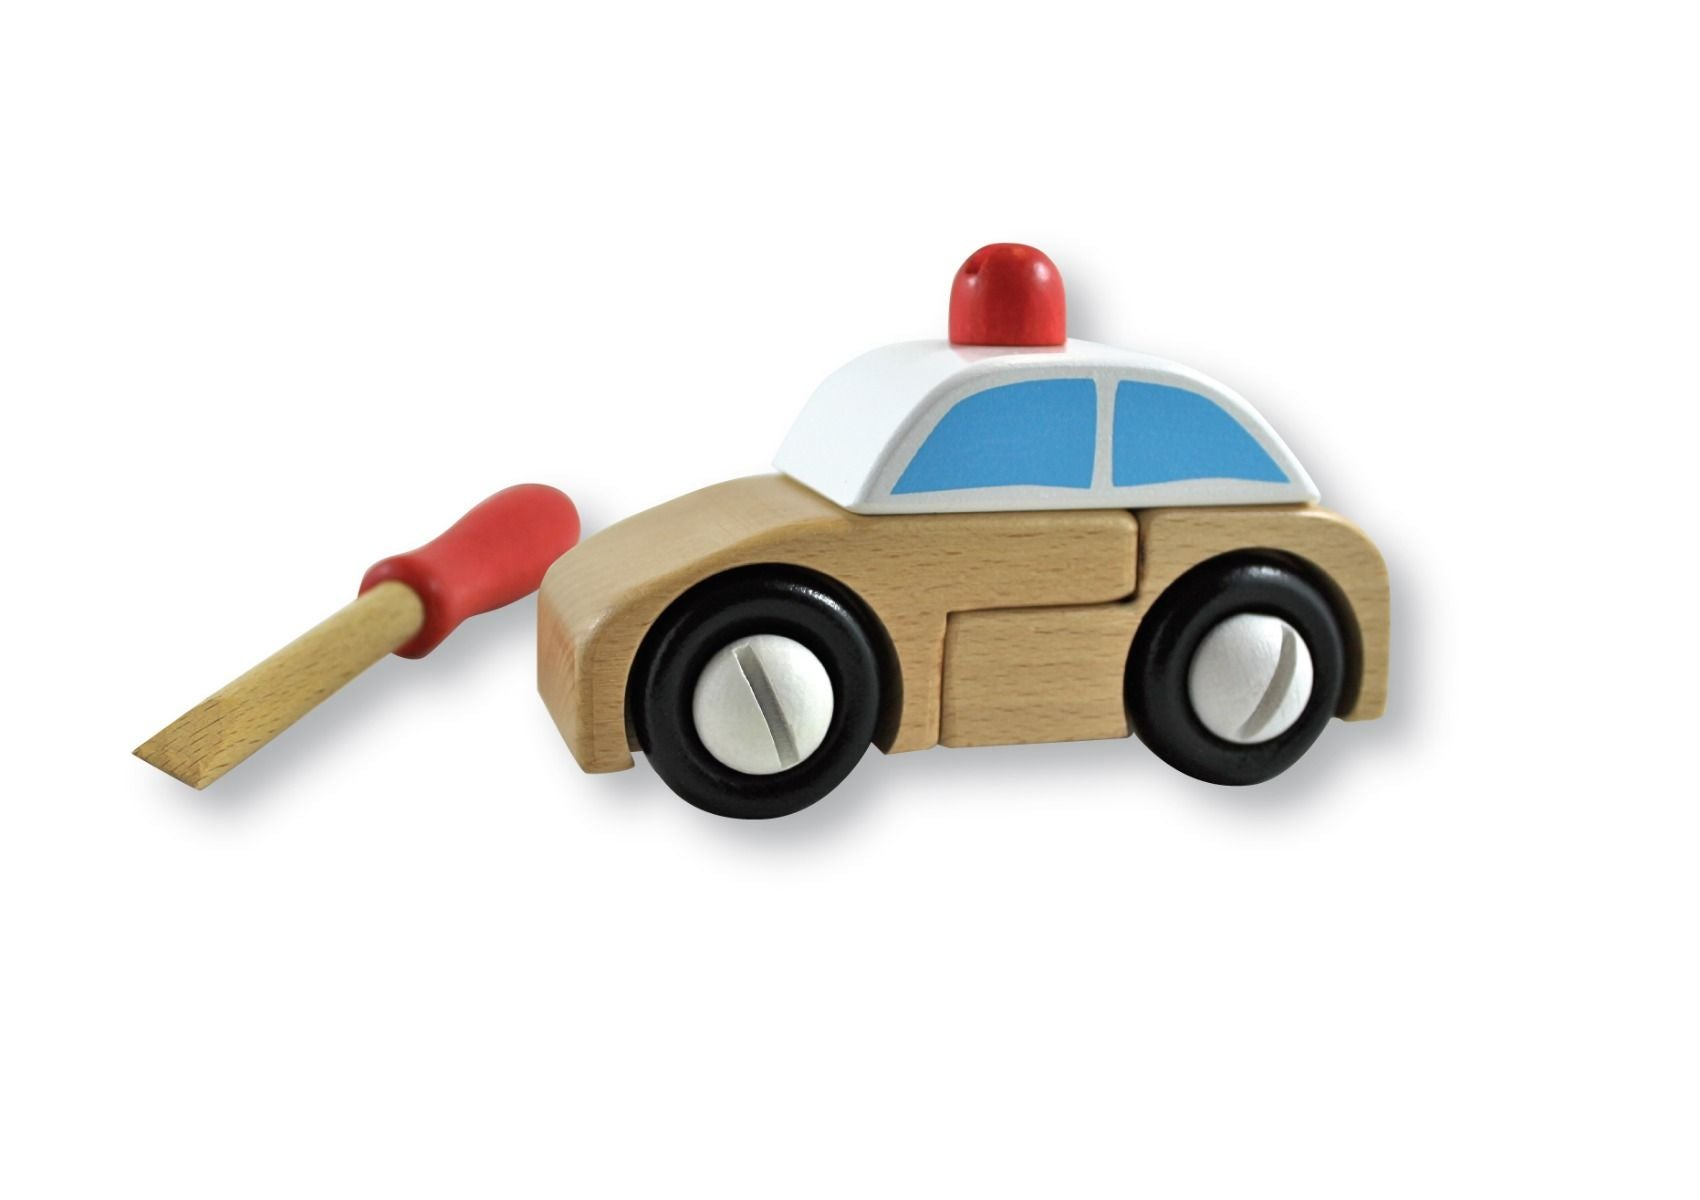 DISCOVEROO Build a Police Car - 13 Pc Wooden Construction Set